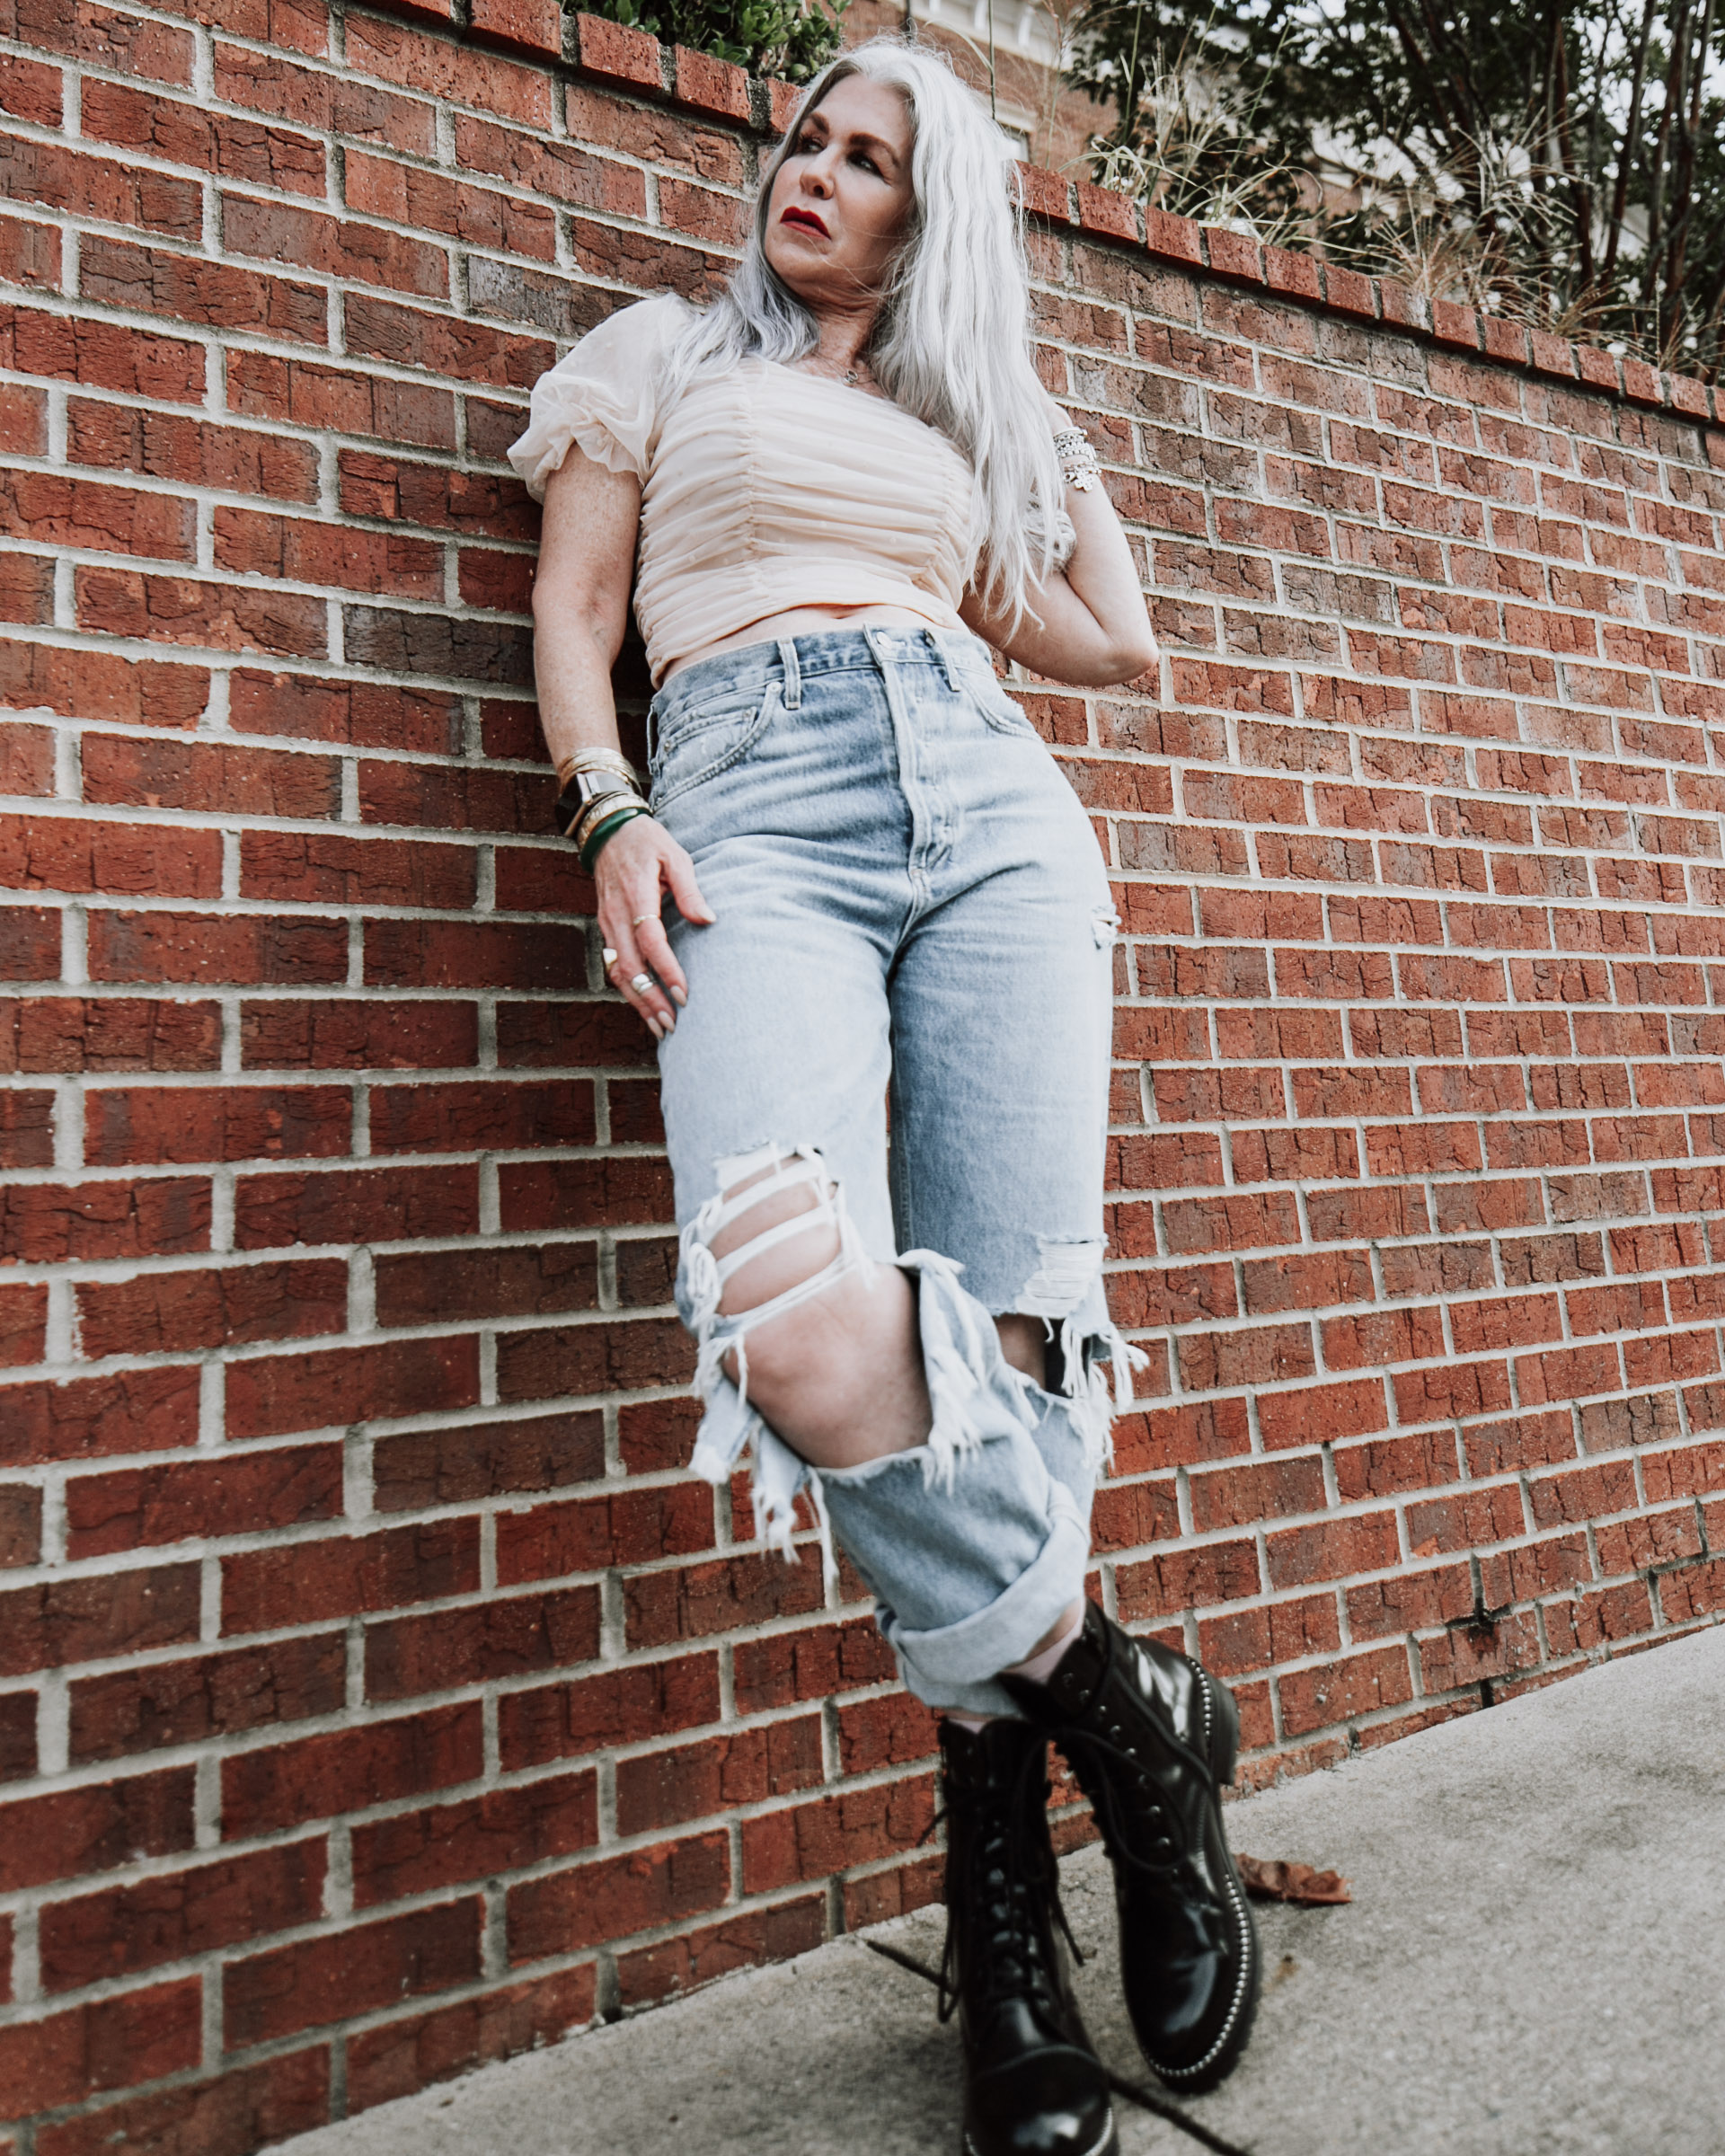 tulle top from h&m, ripped jeans from agolde, black combat boots from nordstrom